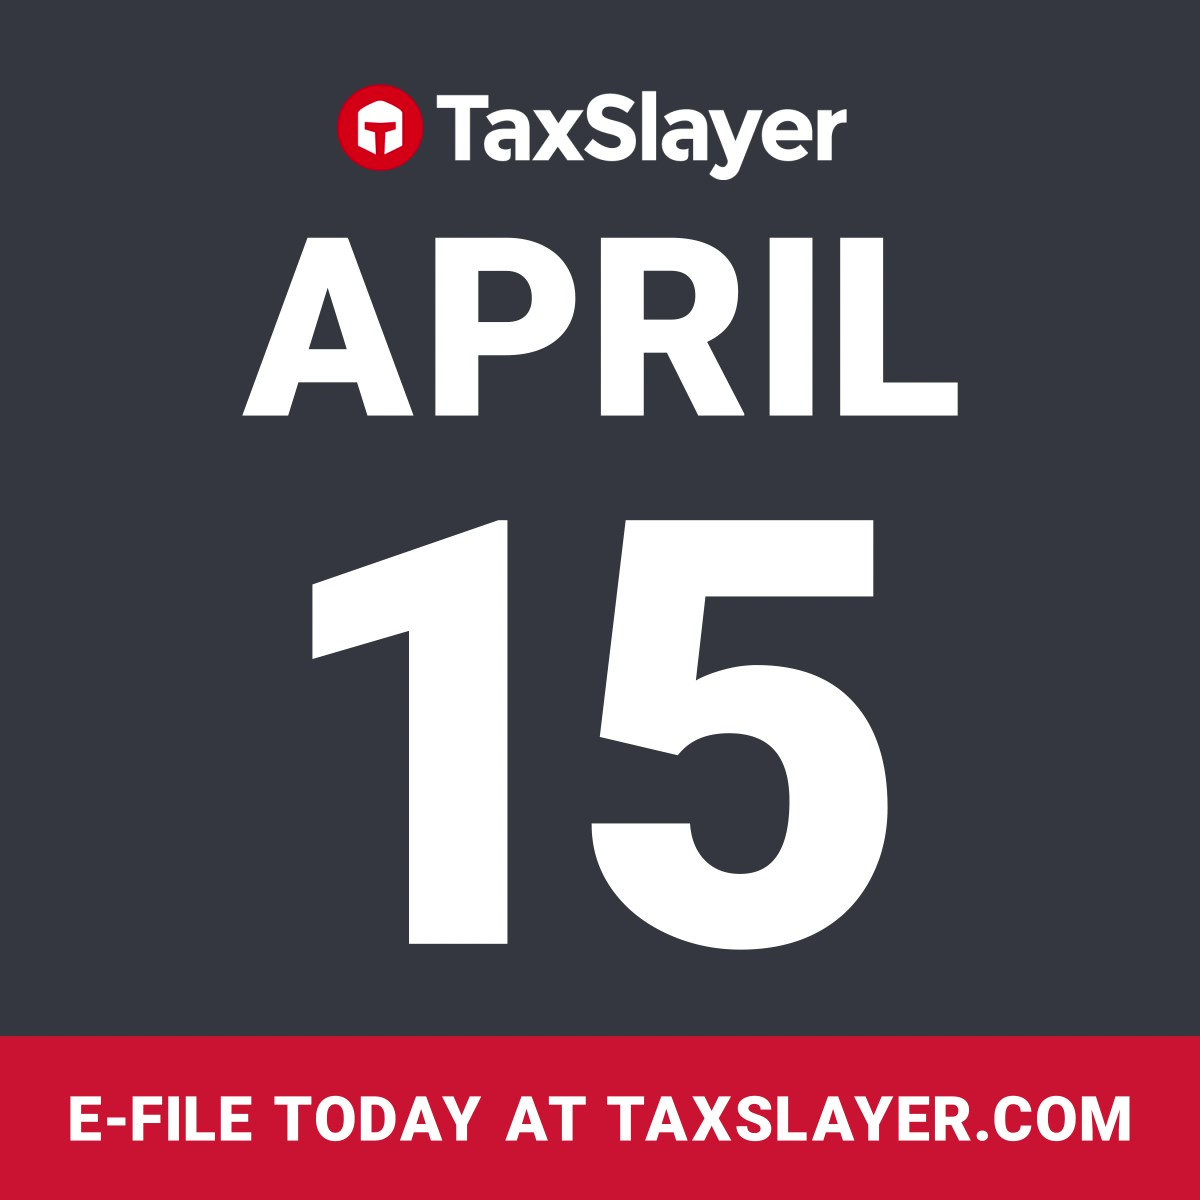 The countdown to tax day is on! If you haven't e-filed yet, TaxSlayer wants you to get your maximum refund. Start for free today at TaxSlayer.com.